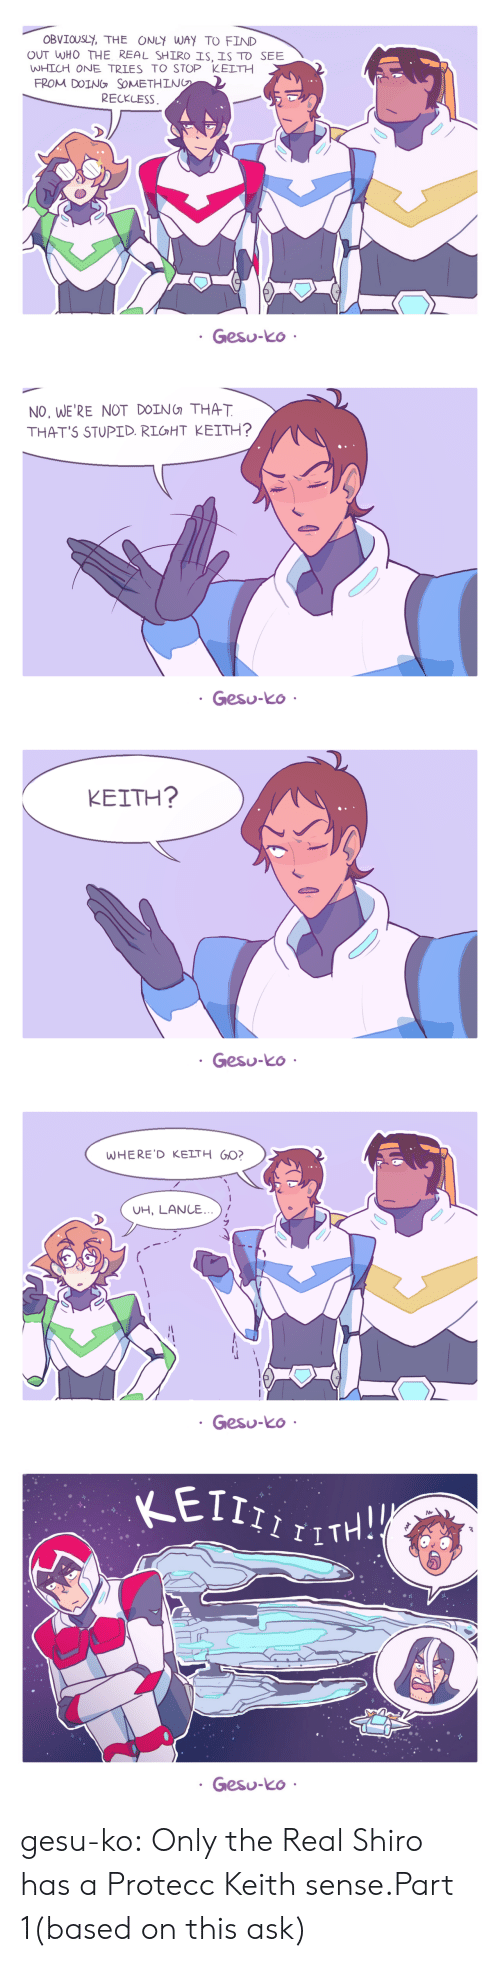 Target, Tumblr, and Blog: OBVIOUSL, THE ONLY WAY TO FIND  OUT WHO THE REAL SHIRO SISTO SEE  WHICH ONE TRIES TO STOP KELTH  FROM DOING, SOMETHIN  RECKLESS  Gesu-ko   NO, WE'RE NOT DOING THAT  THAT'S STUPID. RIGHT KEITH?  Gesu-ko   KEITH?  Gesu-ko   WHERE'D KELTH G0?  UH, LANC...  Gesu-ko   Nr  Gesu-ko gesu-ko:  Only the Real Shiro has a Protecc Keith sense.Part 1(based on this ask)